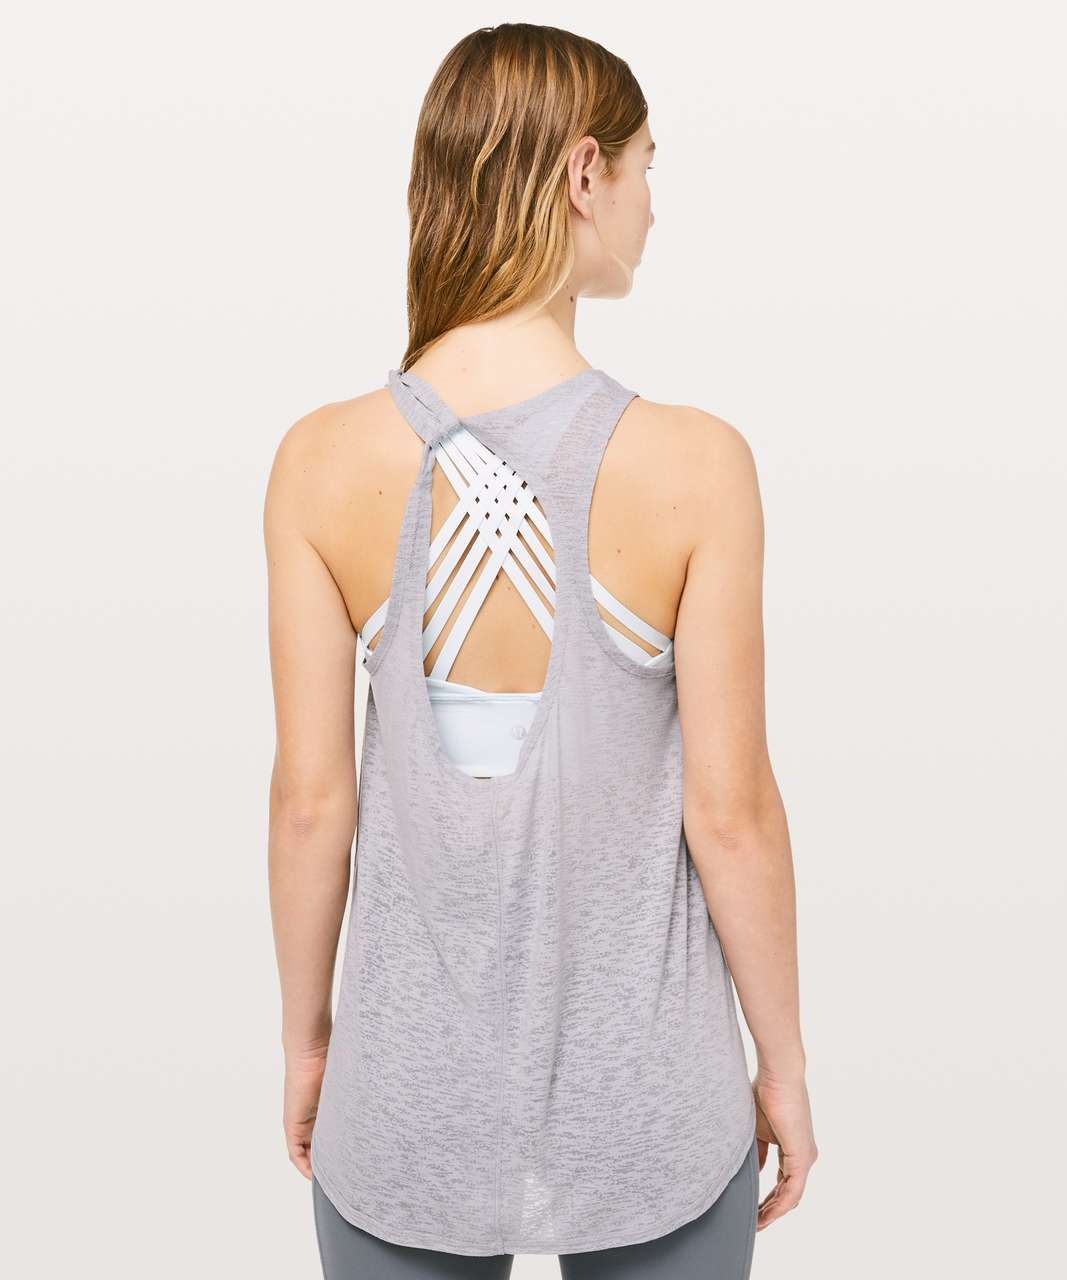 Lululemon Circle Back To It Tank - Silverscreen